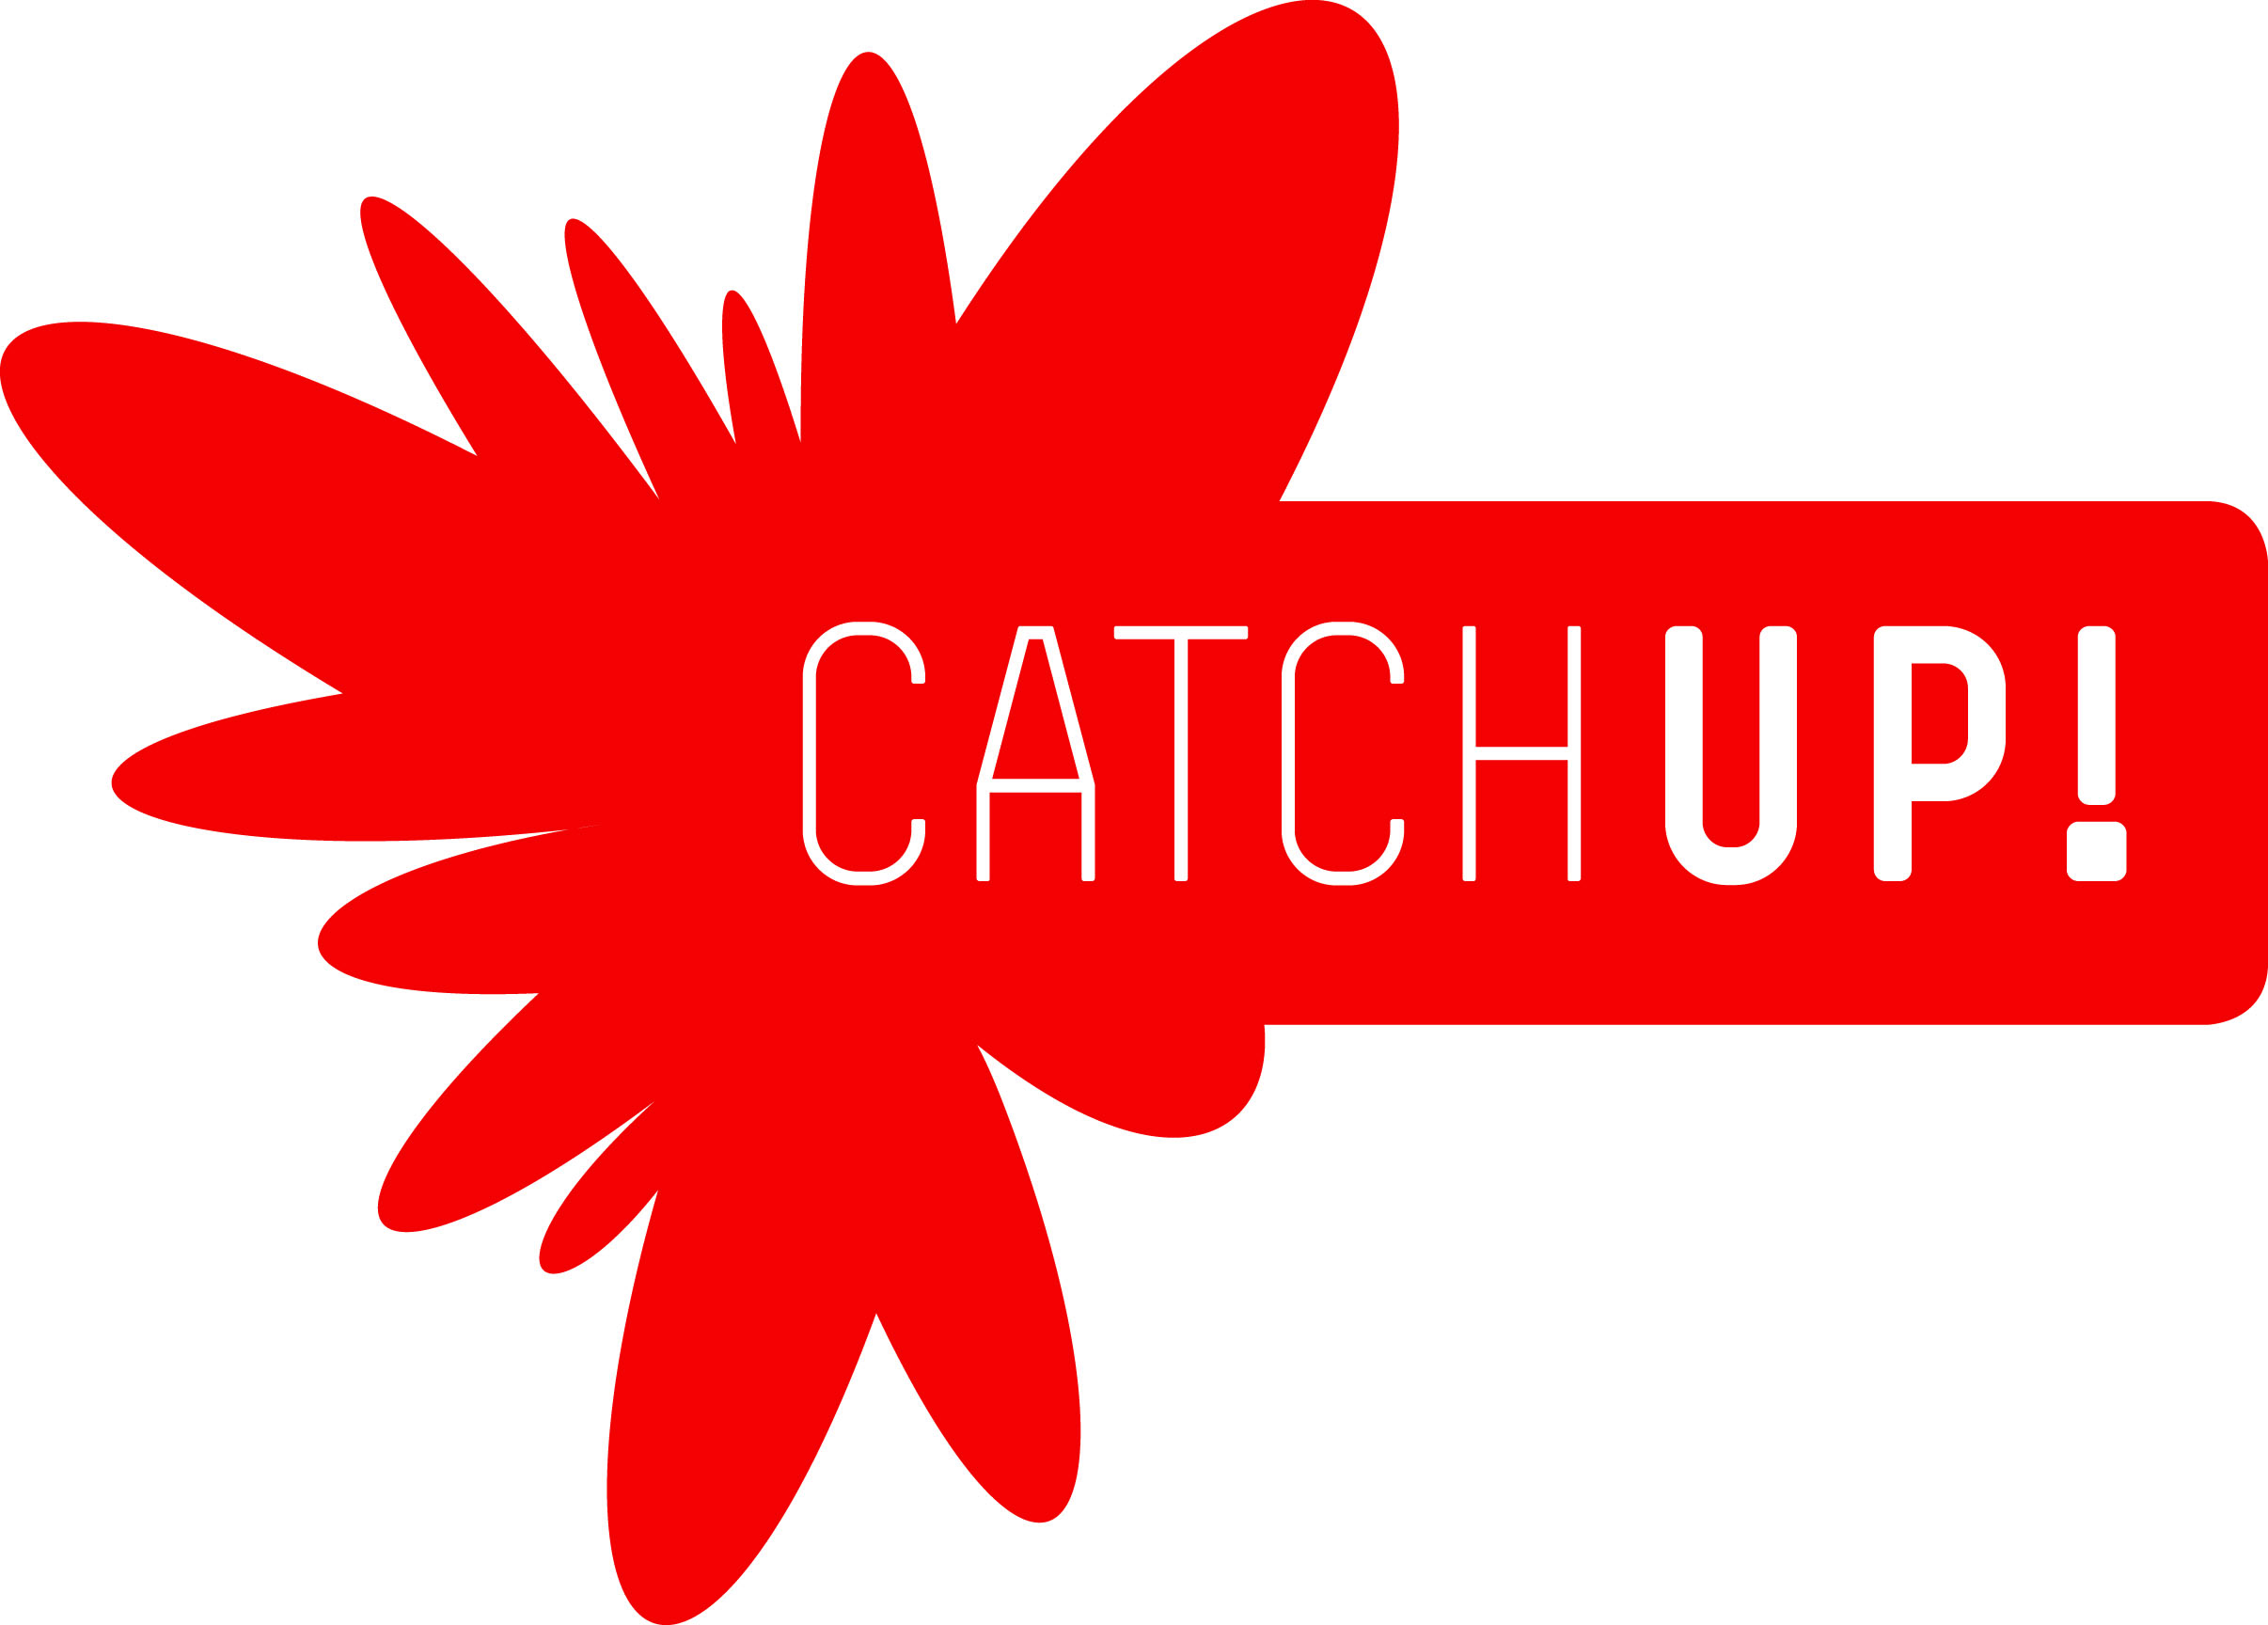 Catchup! Communciations AG